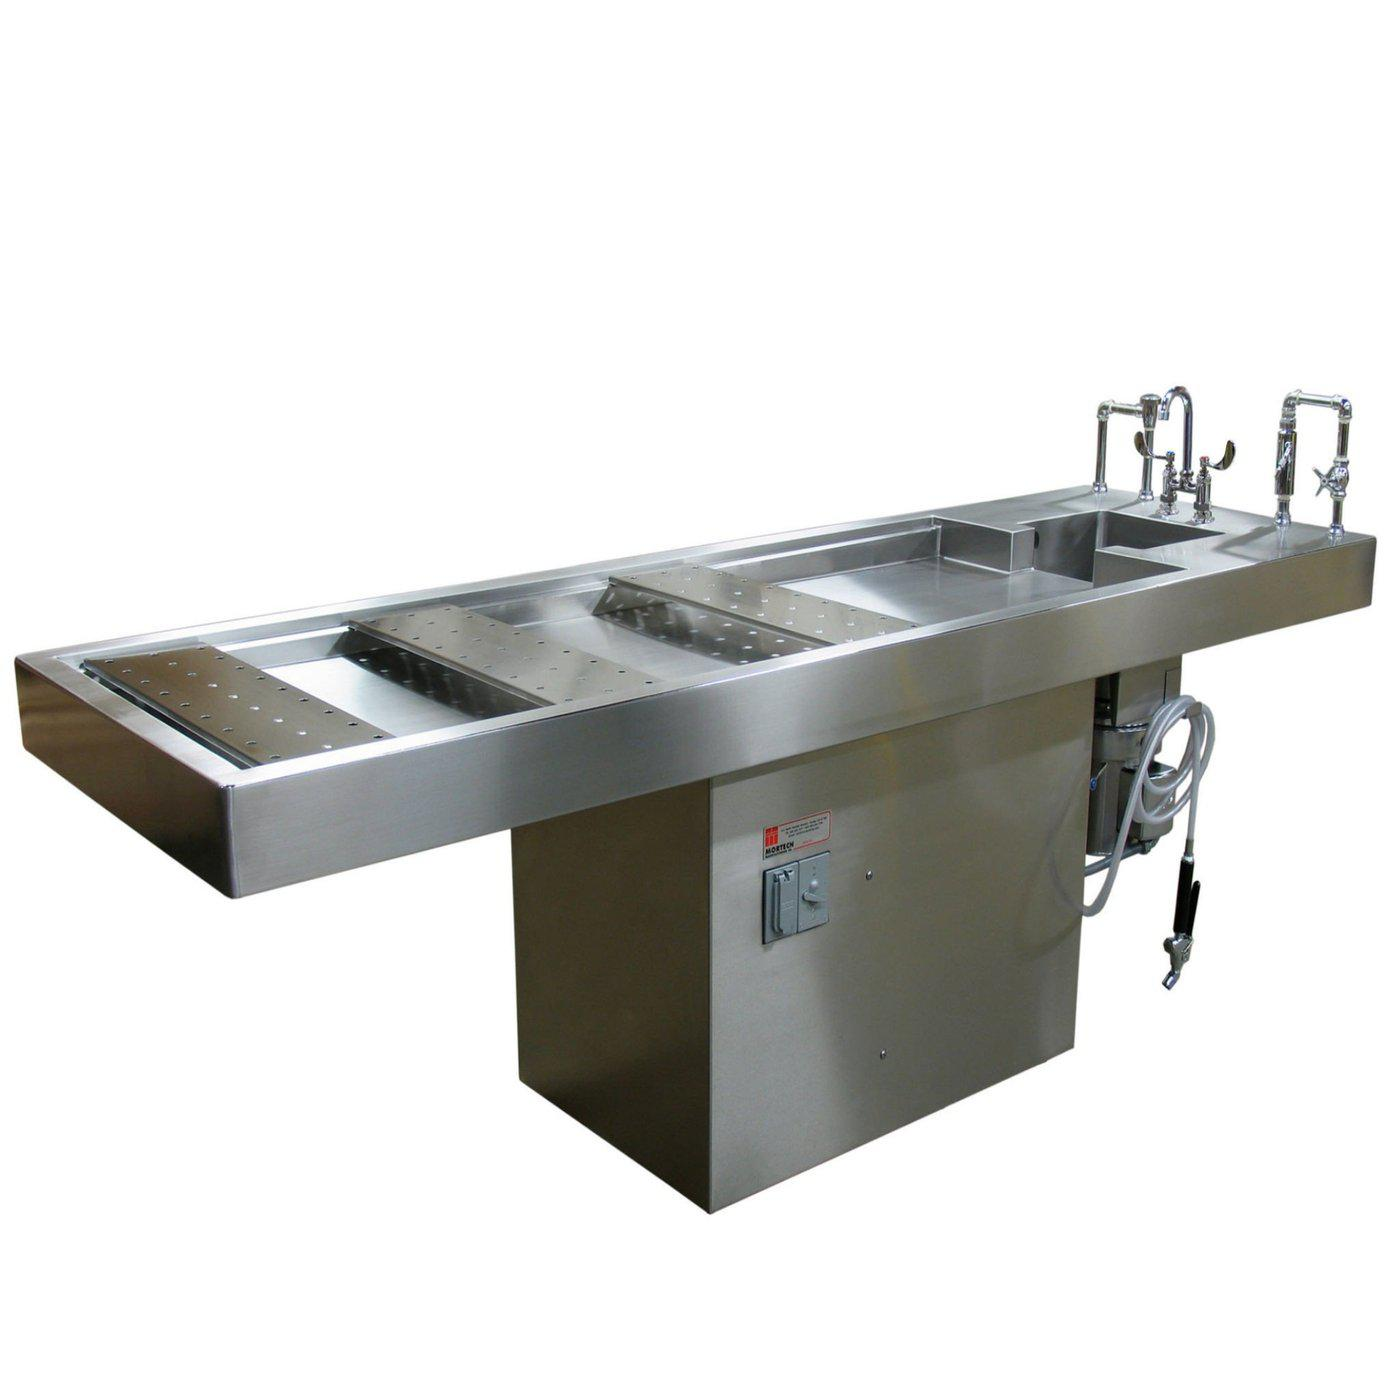 Stationary Pedestal Autopsy Table-Pedestal Autopsy Tables-Mortech Manufacturing Company Inc. Quality Stainless Steel Autopsy, Morgue, Funeral Home, Necropsy, Veterinary / Anatomy, Dissection Equipment and Accessories